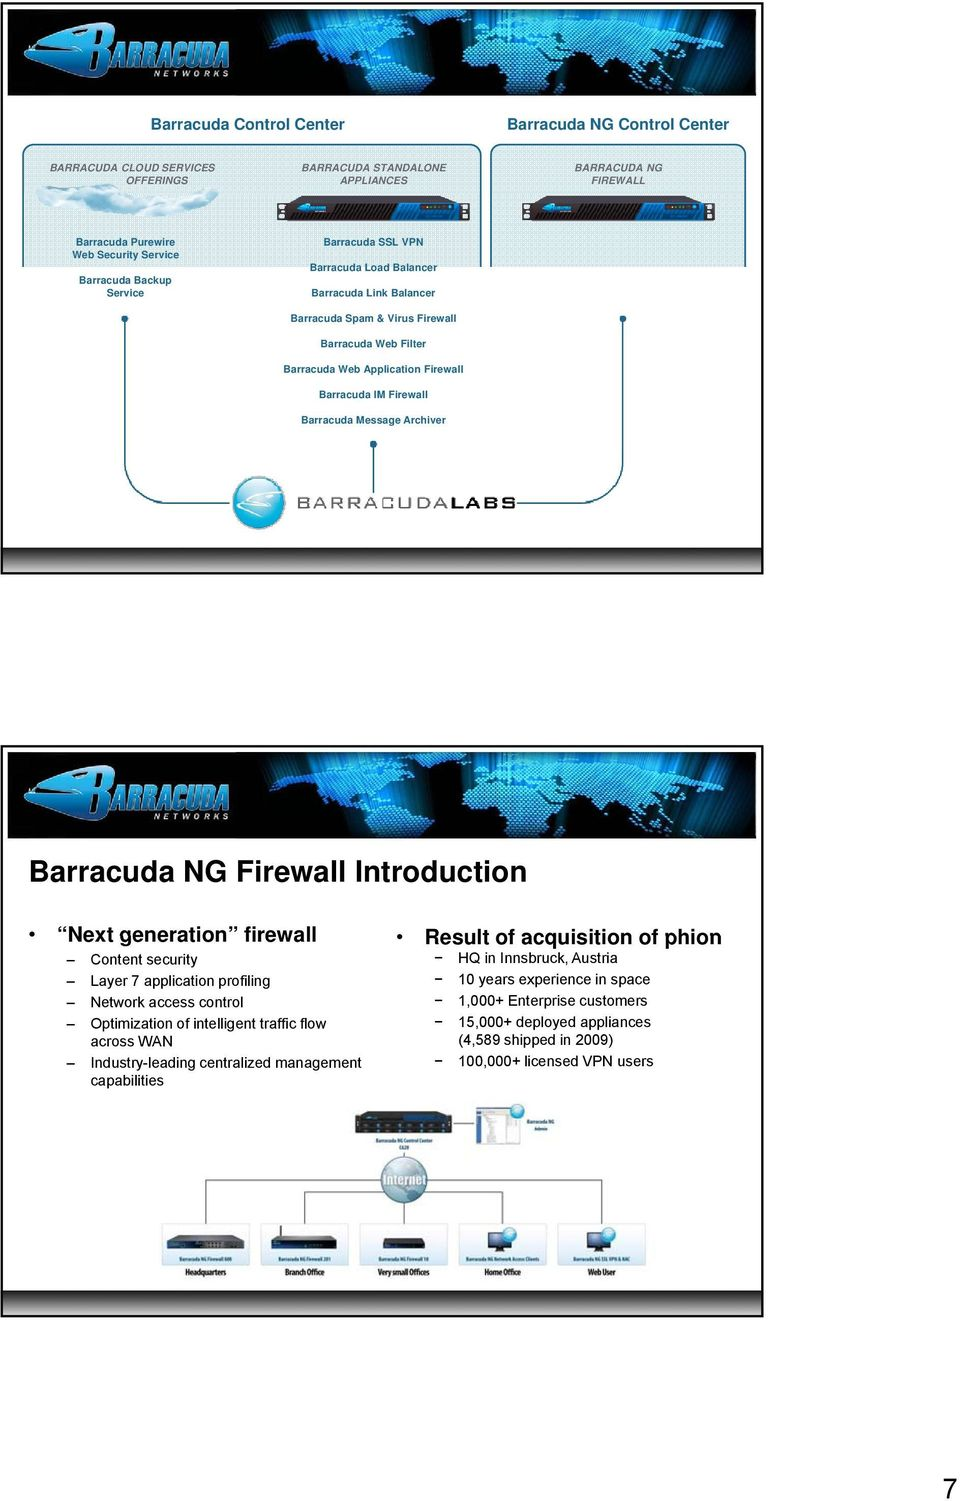 Message Archiver Barracuda NG Firewall Introduction Next generation firewall Result of acquisition of phion Content security HQ in Innsbruck, Austria Layer 7 application profiling 10 years experience